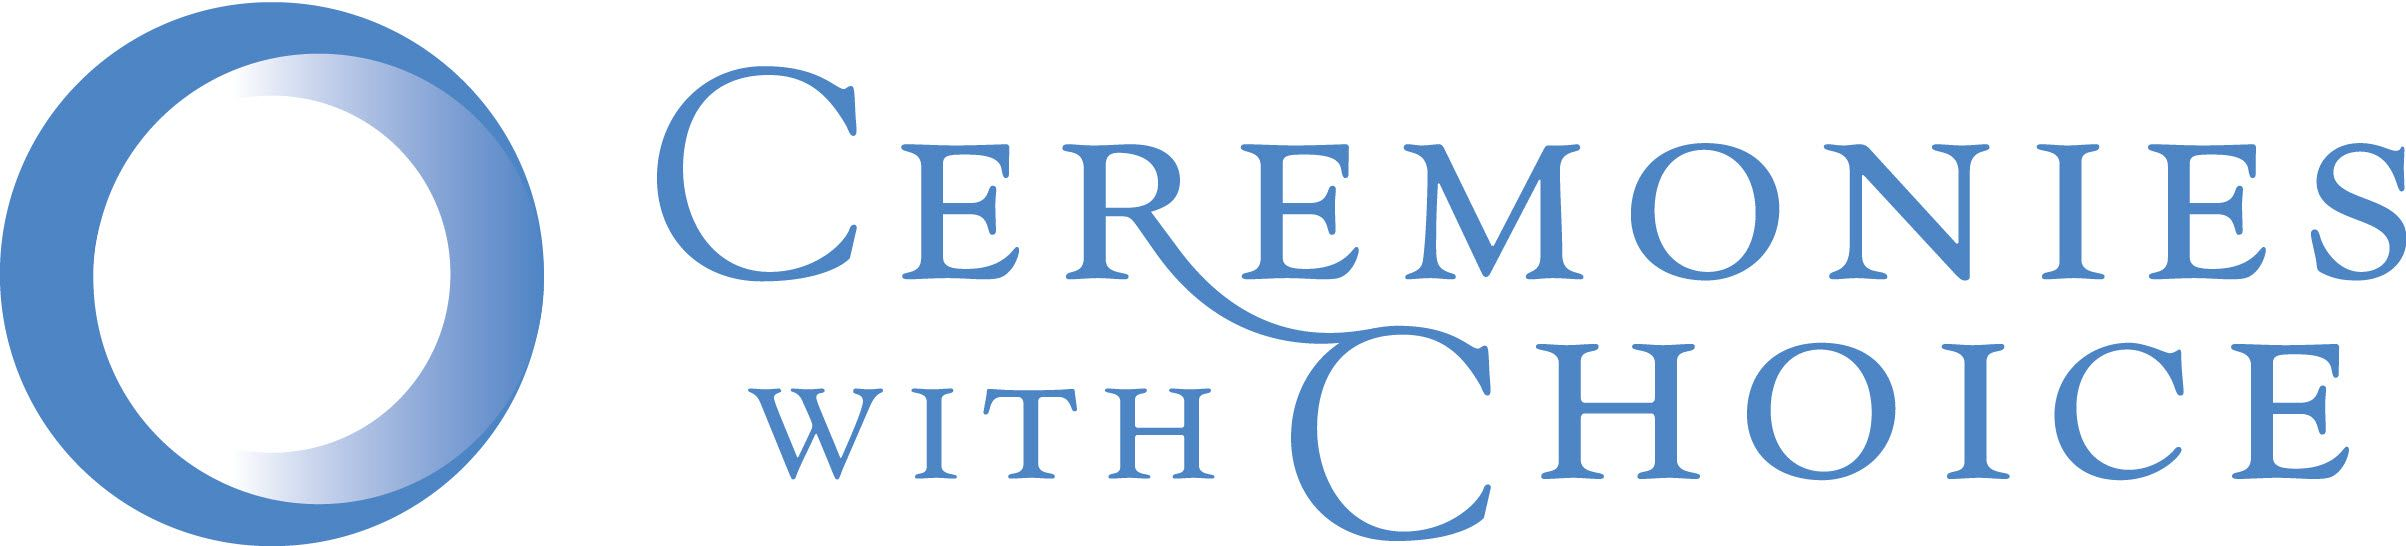 Ceremonies With Choice Logo